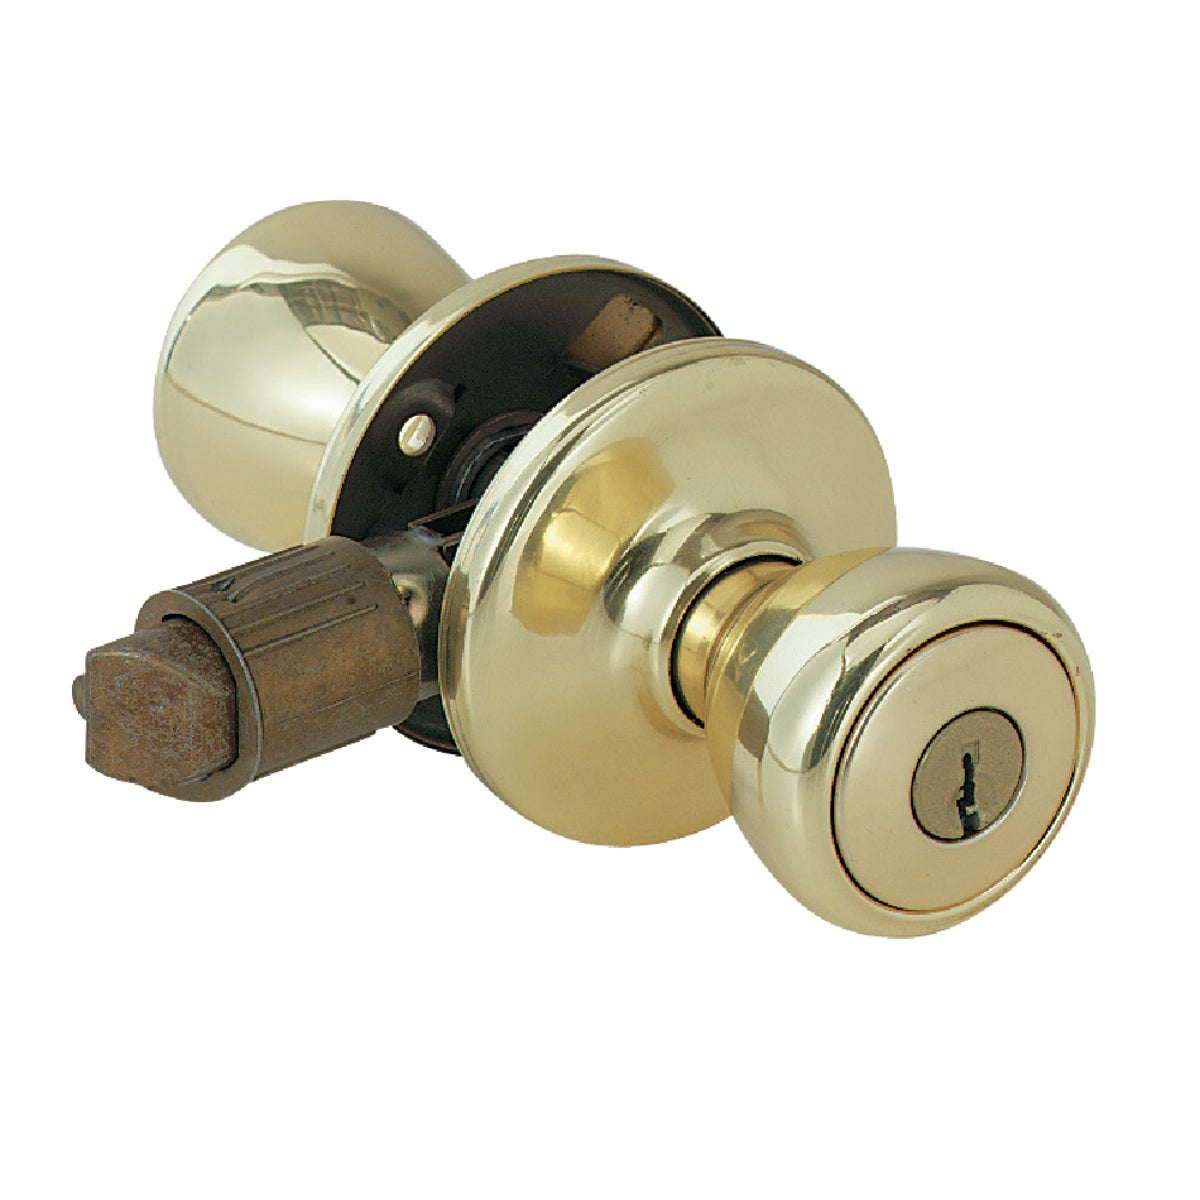 PB MOBILE HOME ENT LOCK - 400M 3 CP K6 by Kwikset